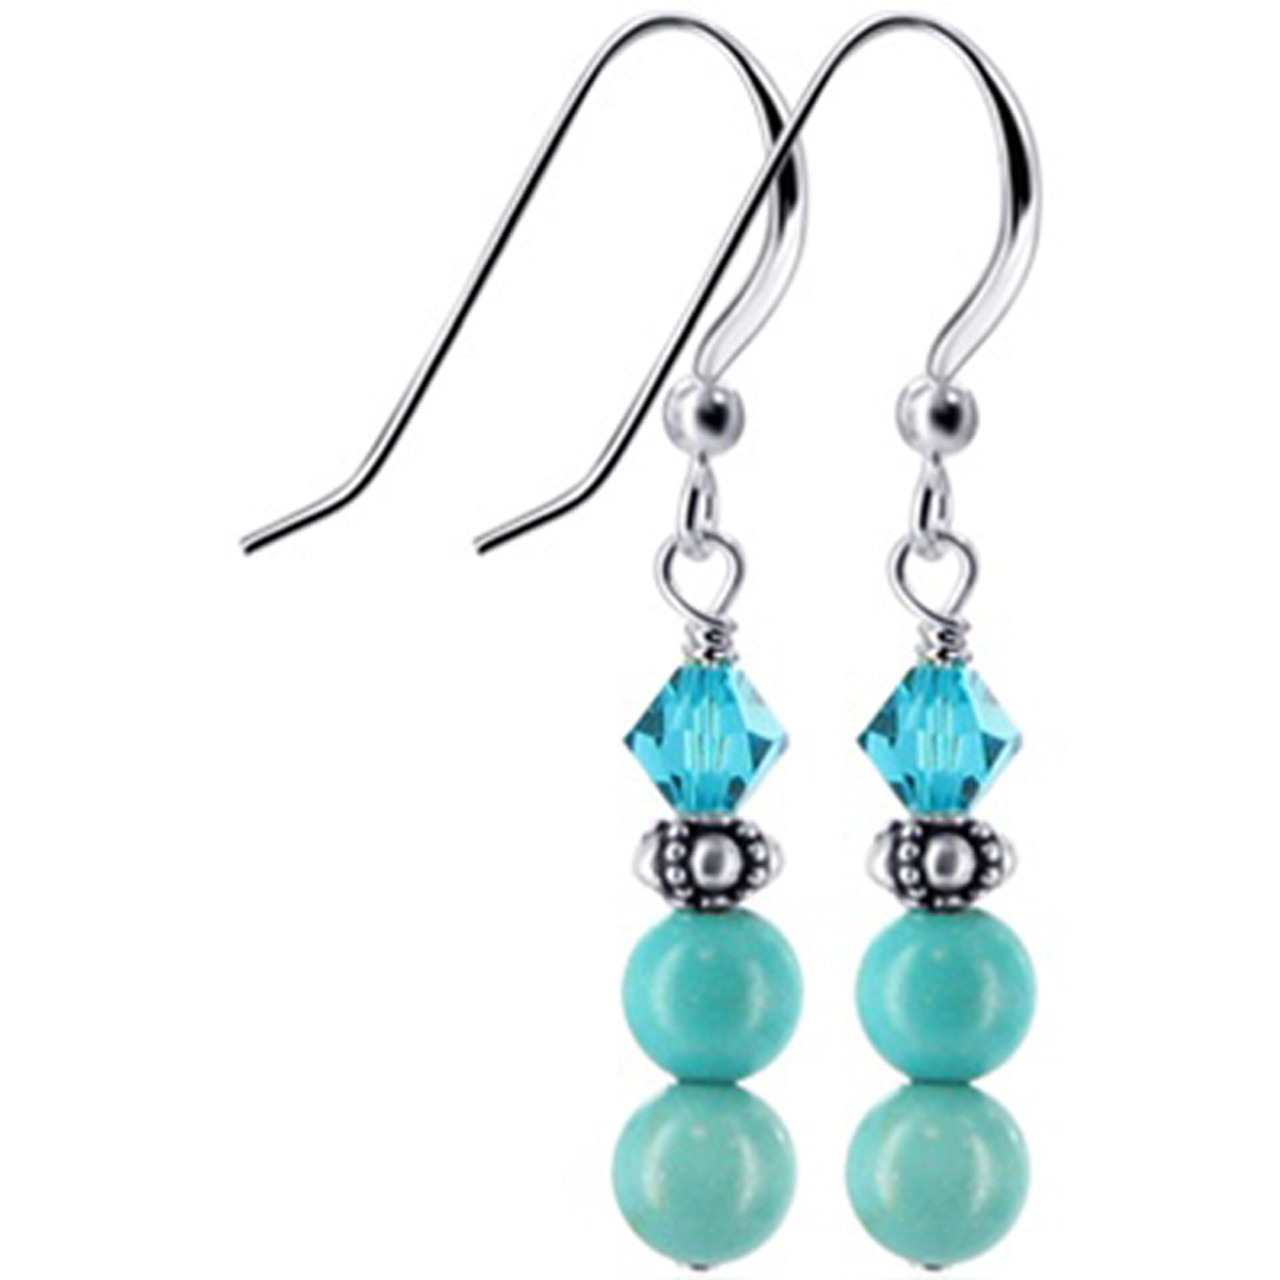 7729b3b01 Turquoise Bead and Blue Swarovski Crystal Handmade Drop Earrings. Lovely  pair of Sterling Silver ...